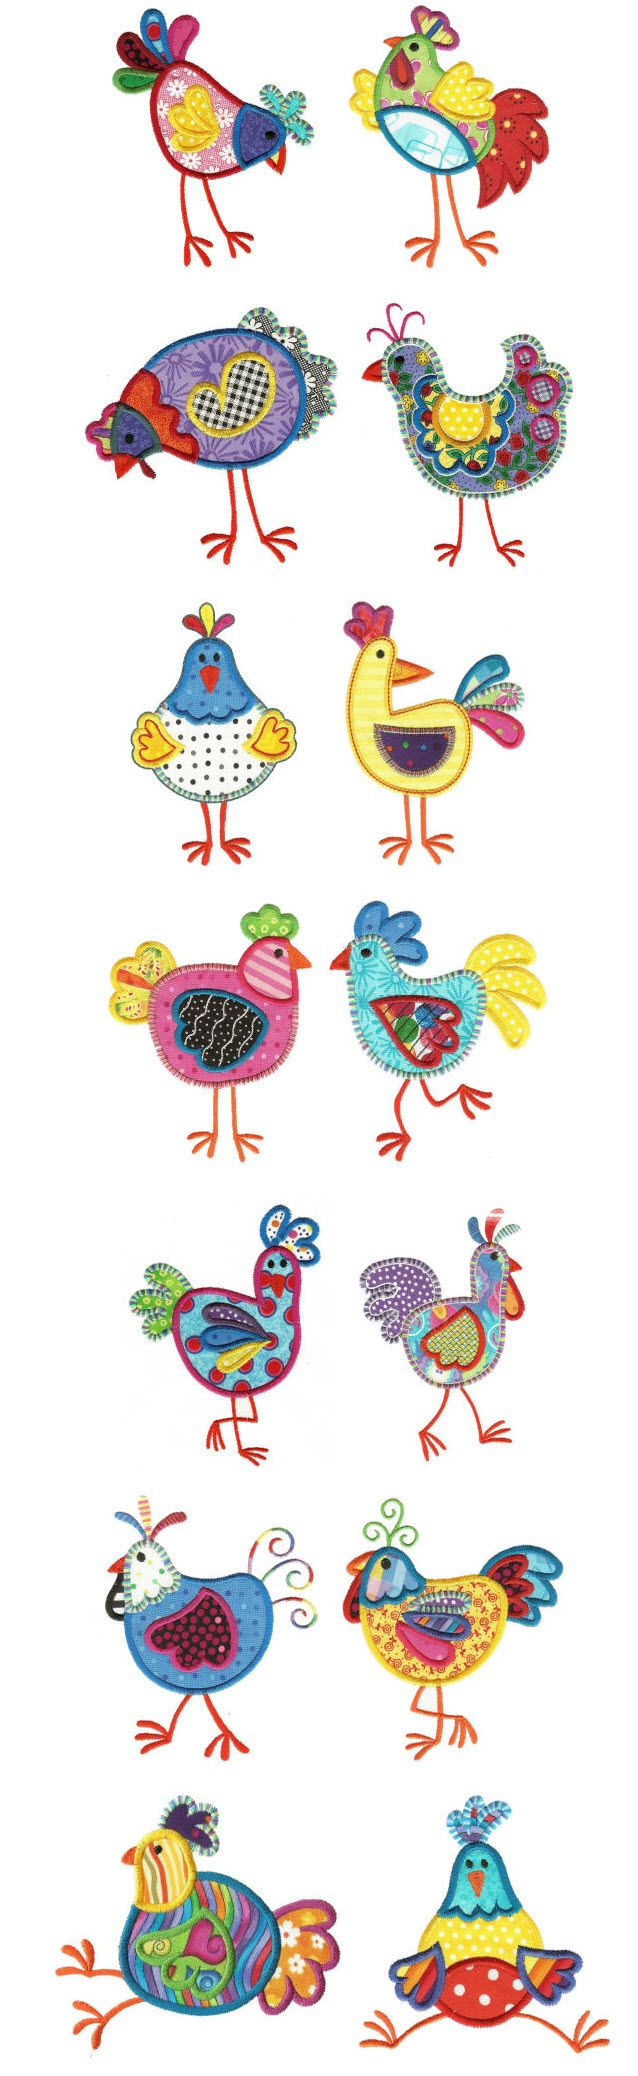 Wonderful ideas for fabric combinations with chickens or any other whimsical creature